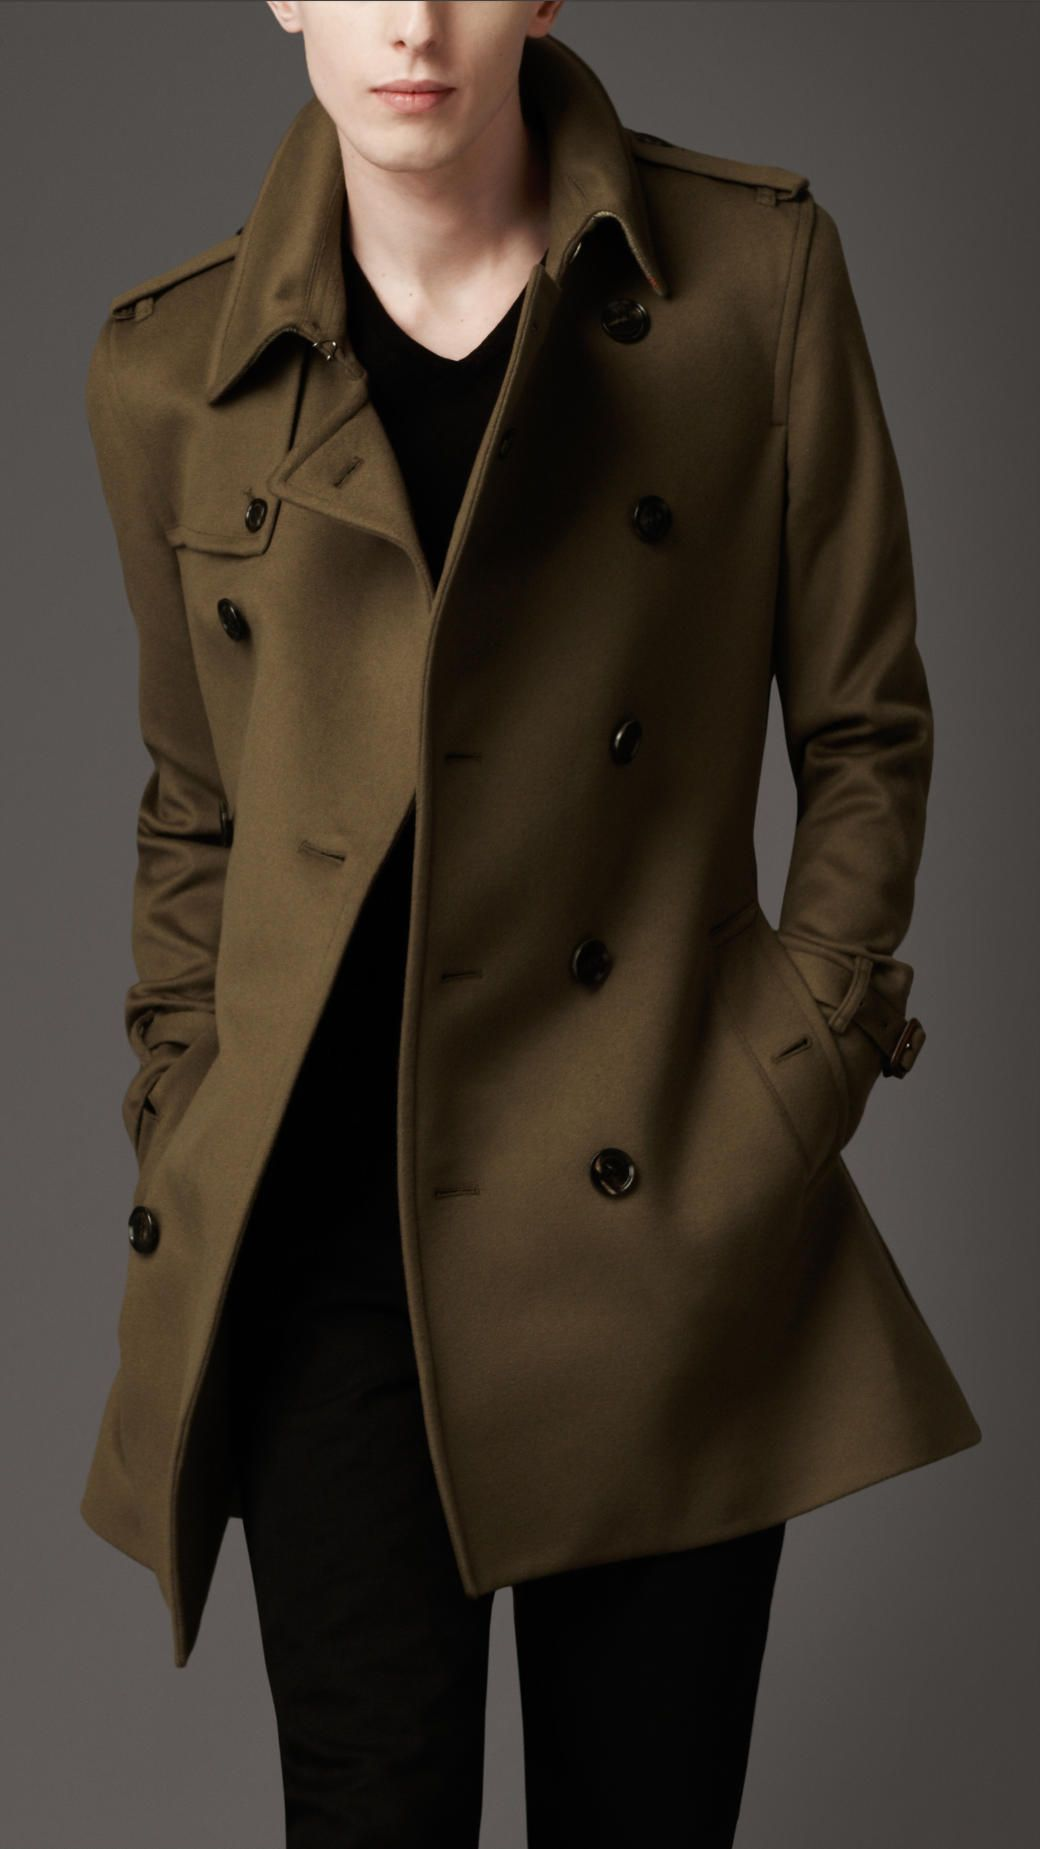 WOOL TRENCH COAT | Burberry | My Style | Pinterest | Wool Trench